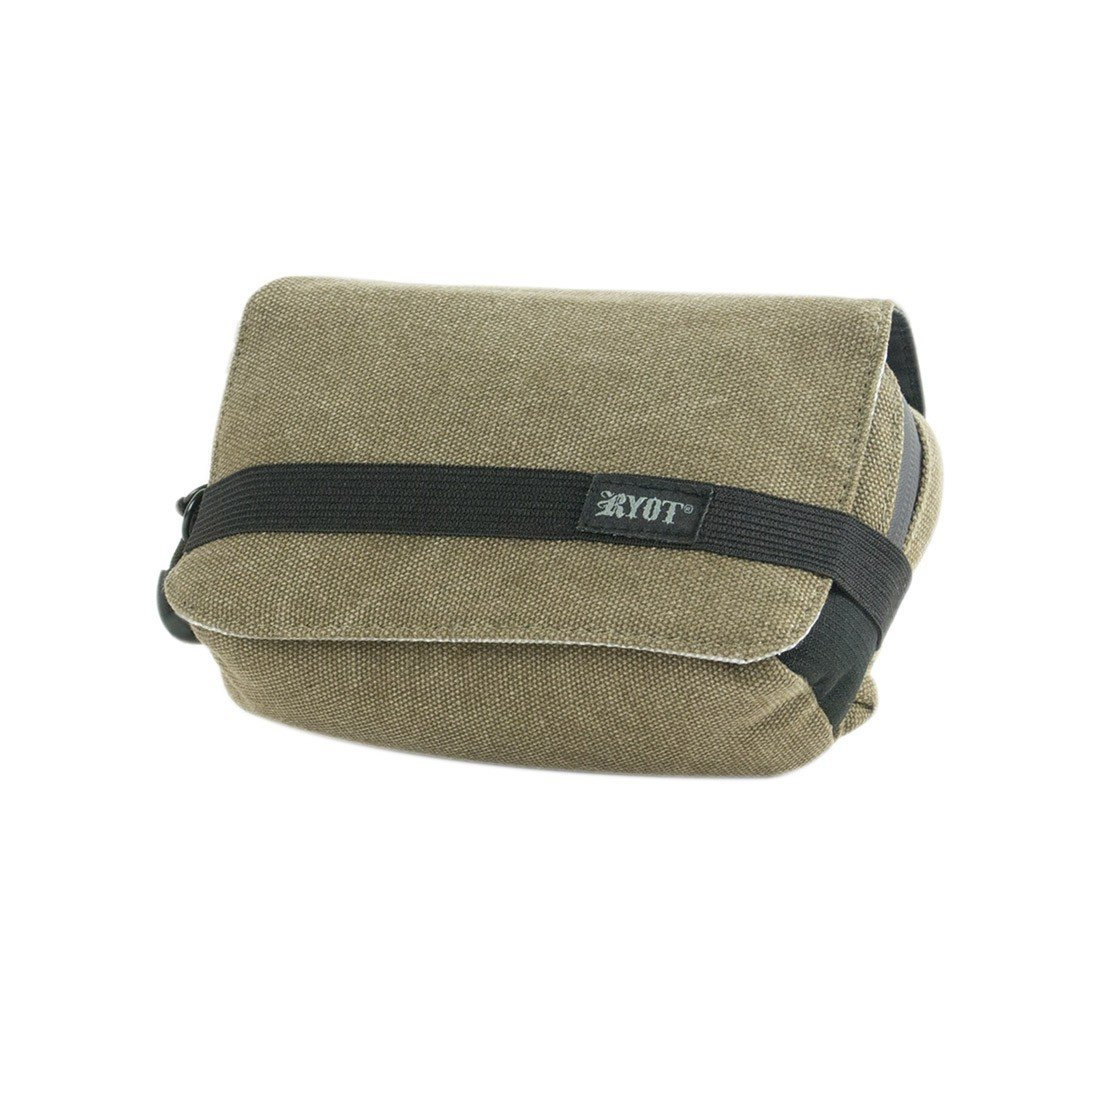 dac797b0096c RYOT Piper Case - Carbon Series with SmellSafe and Lockable Technology  (Olive, 7.5 x 3 x 5